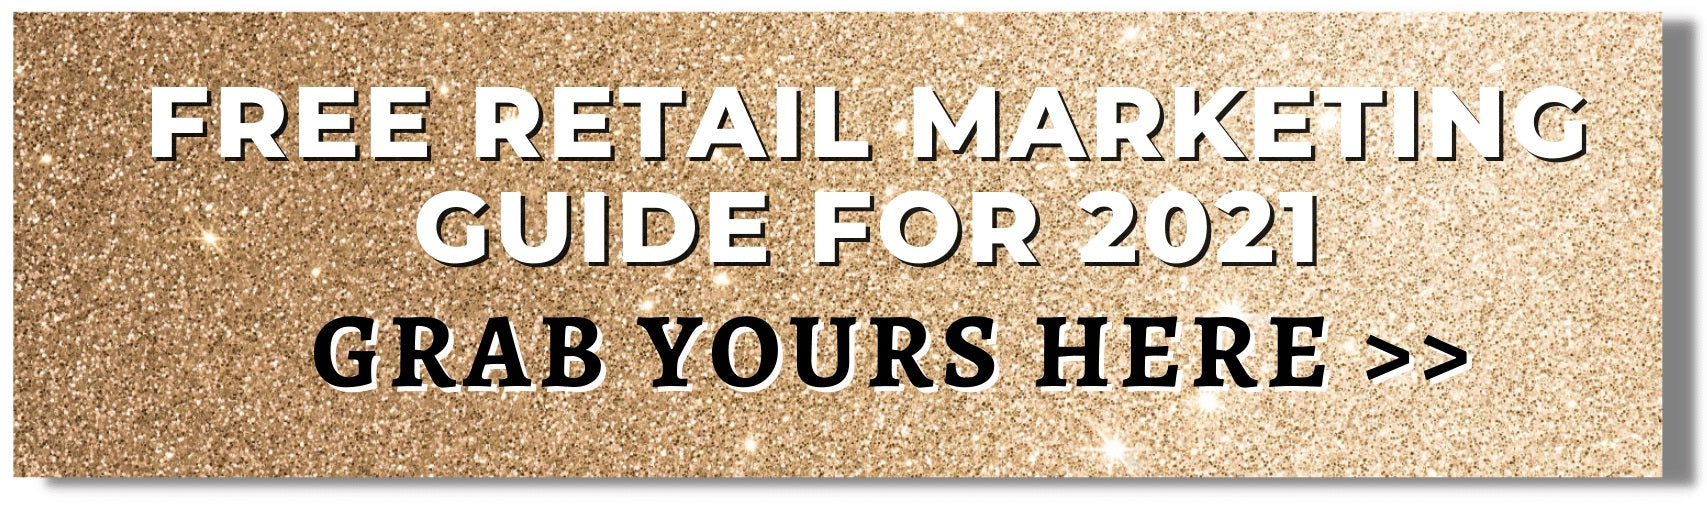 Free Retail Marketing Guide for Boutiques 2021